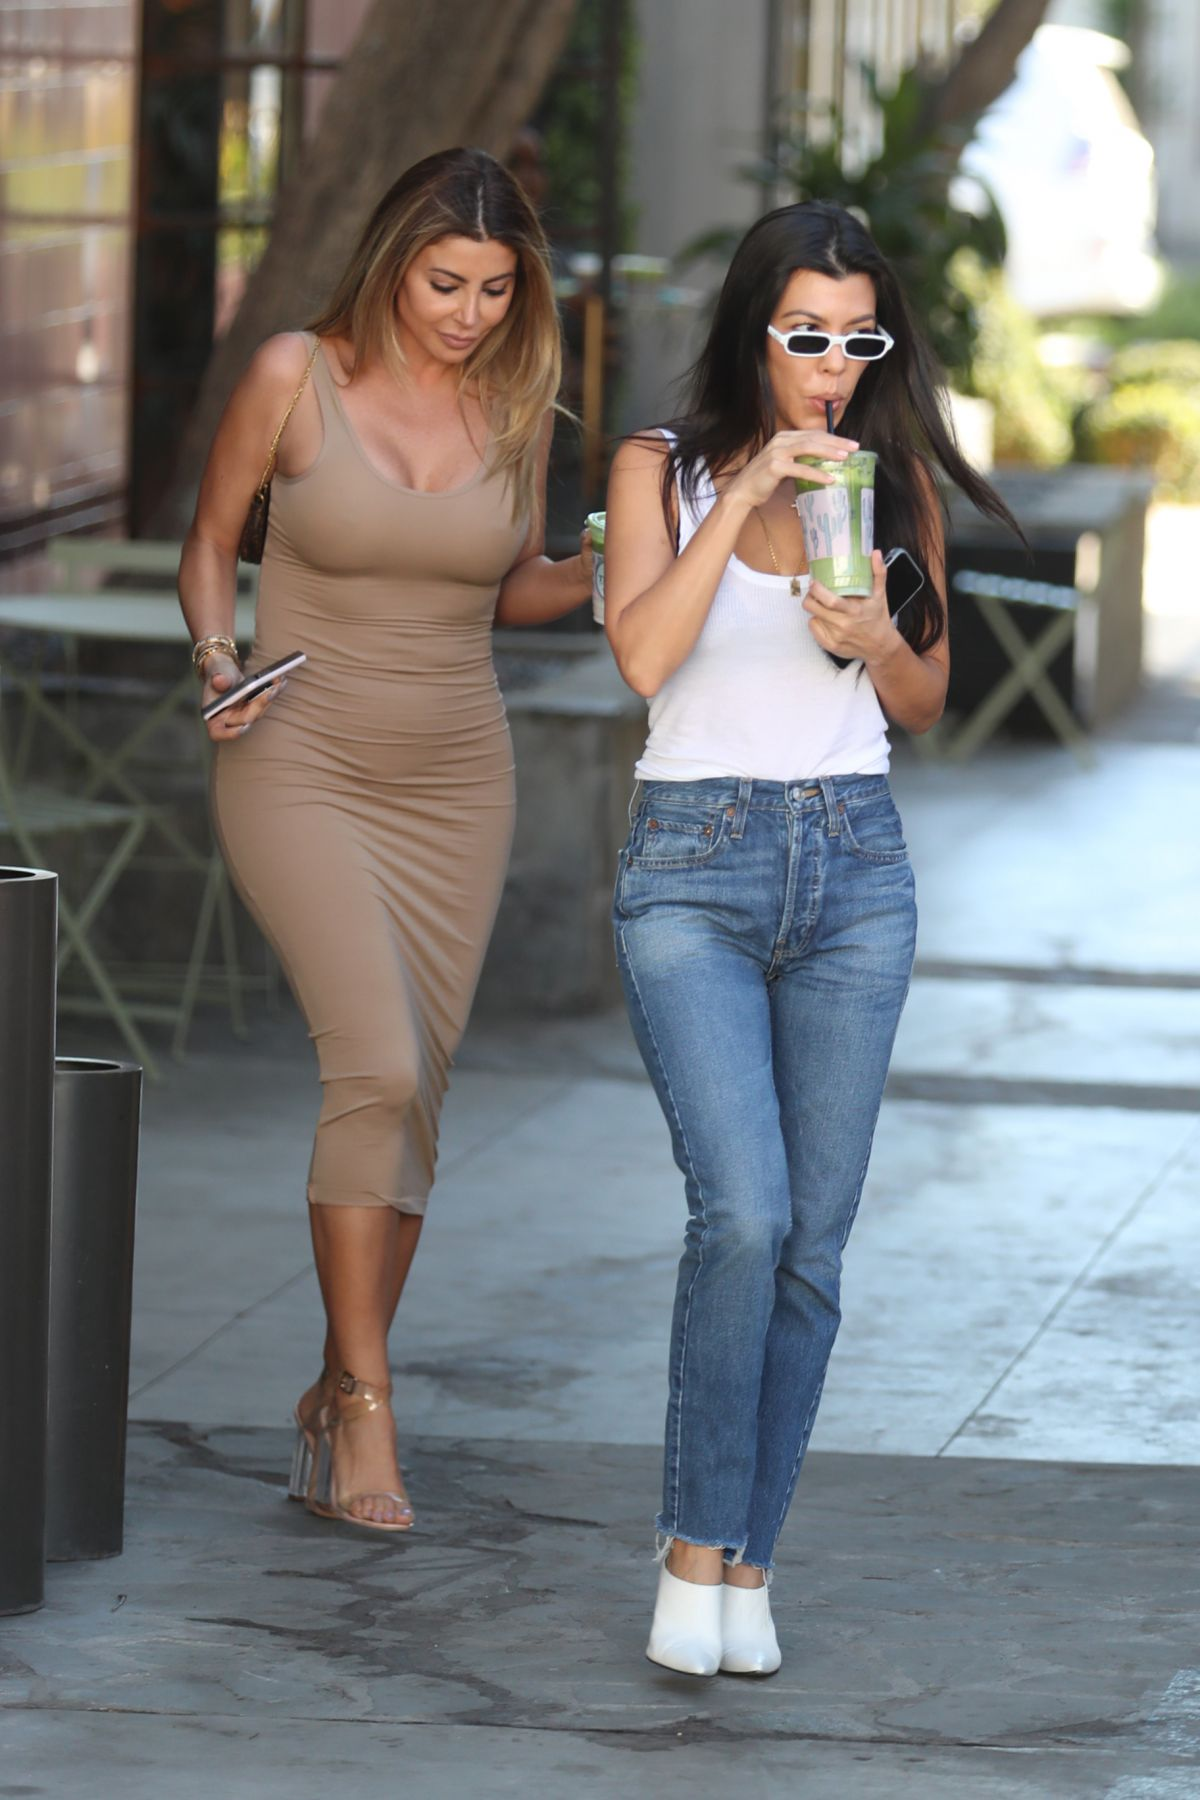 Kourtney Kardashian and Larsa Pippen Seen in West Hollywood